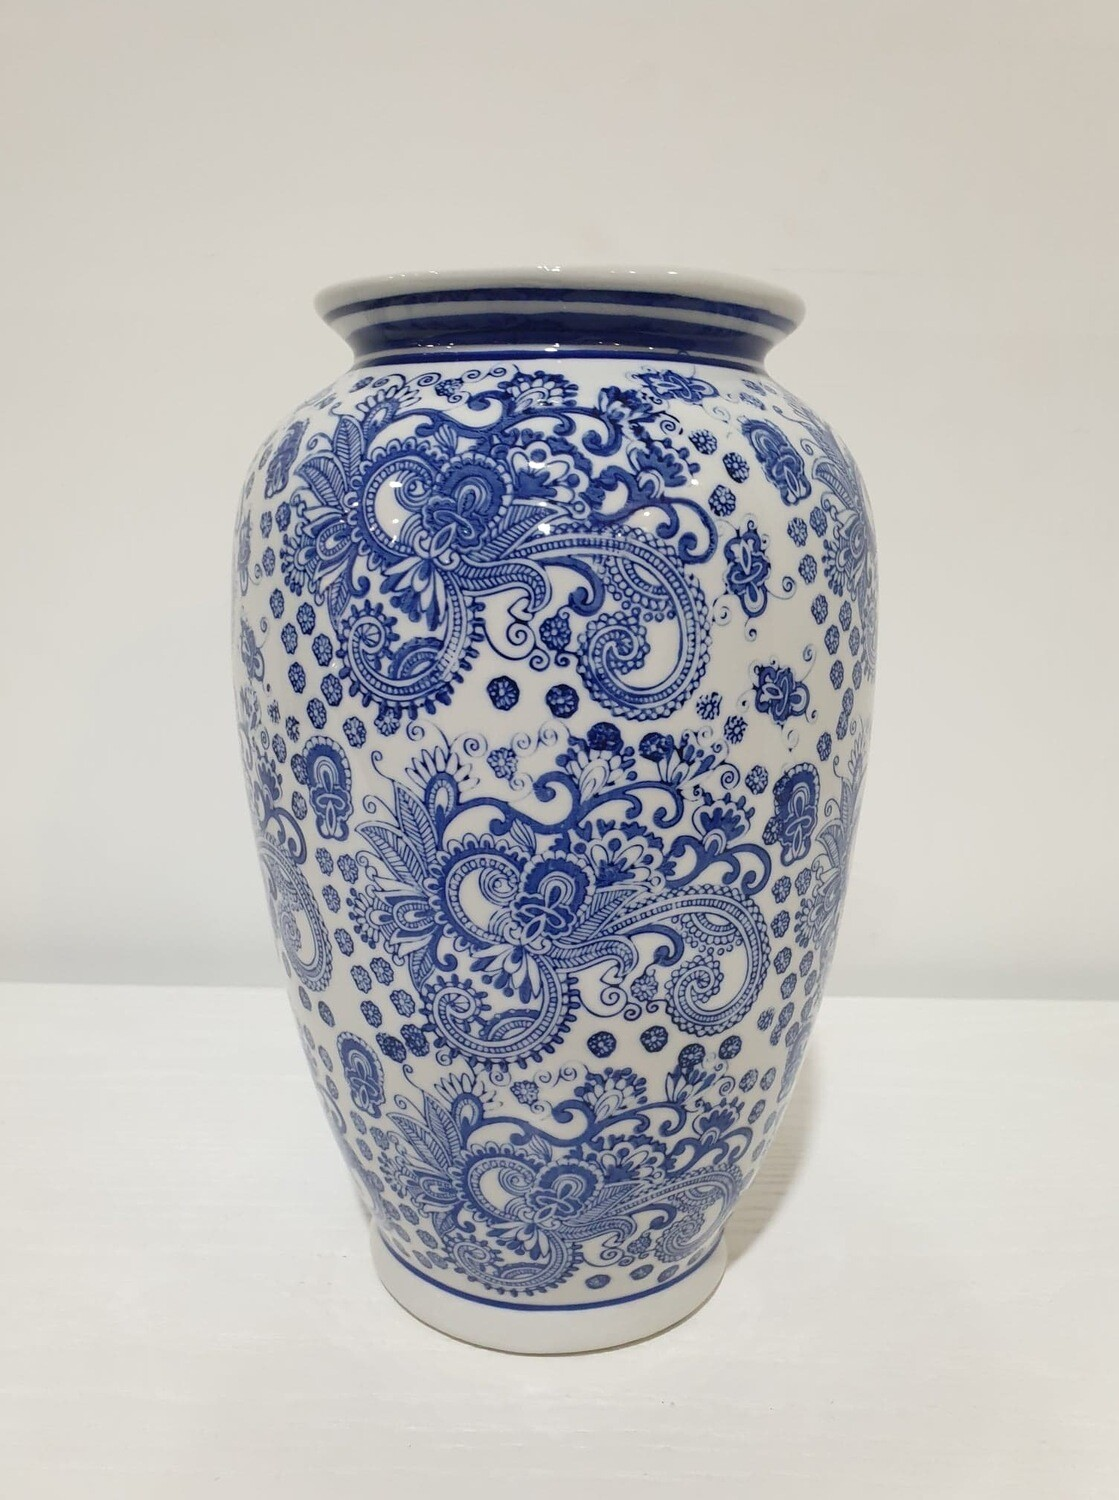 Vase-Blue/White Toile